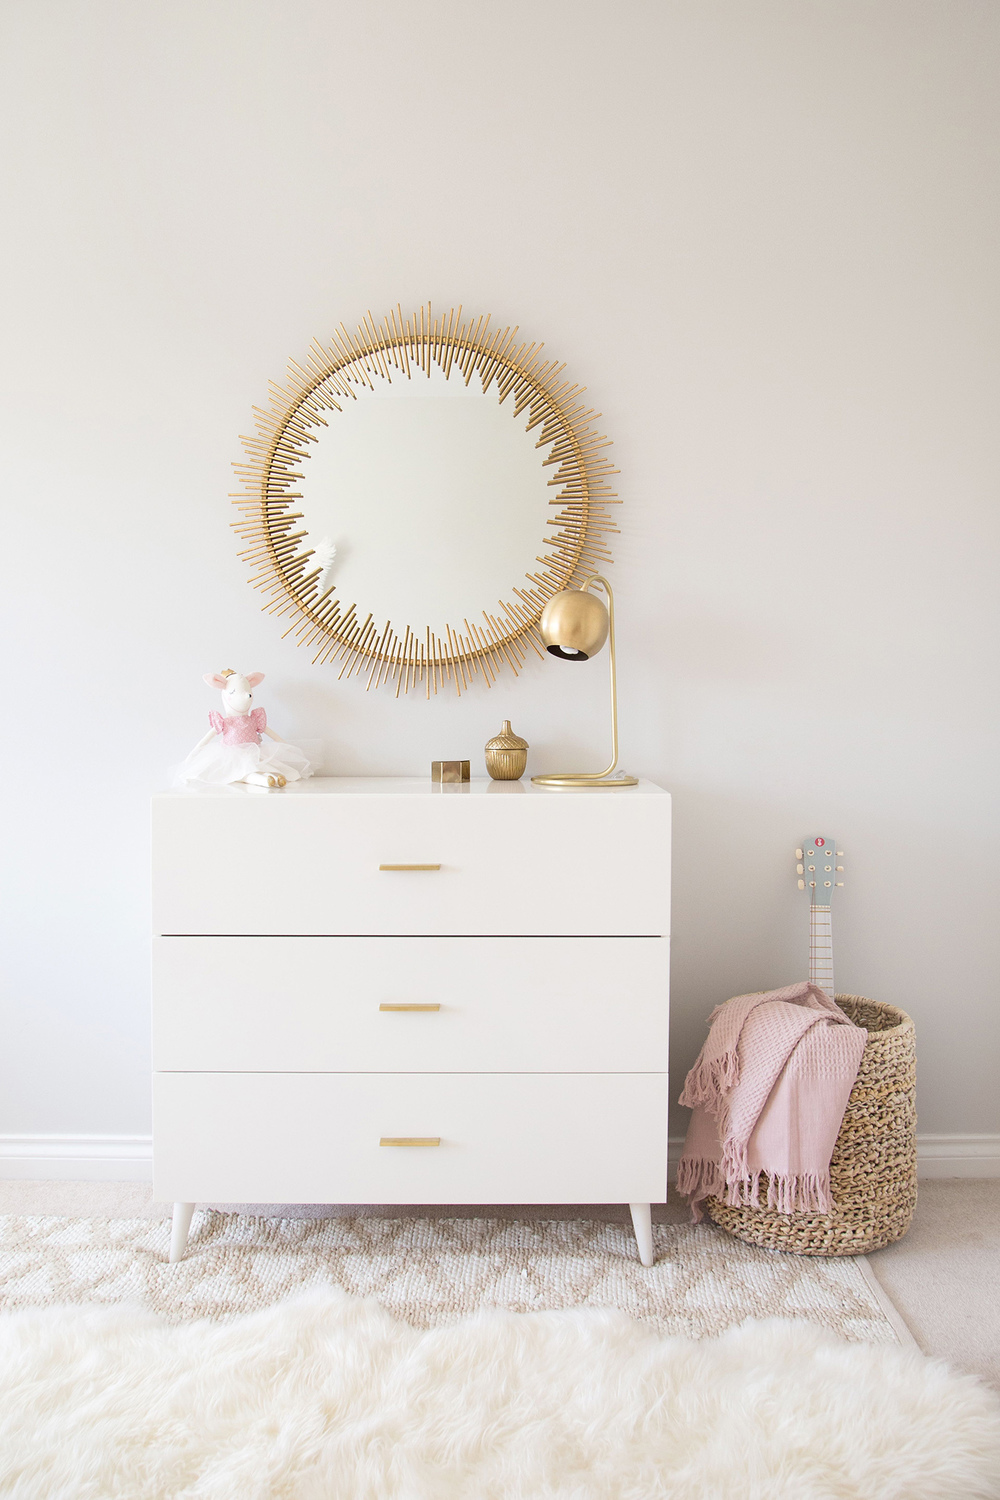 Ella's mid century modern white dresser with gold statement mirror